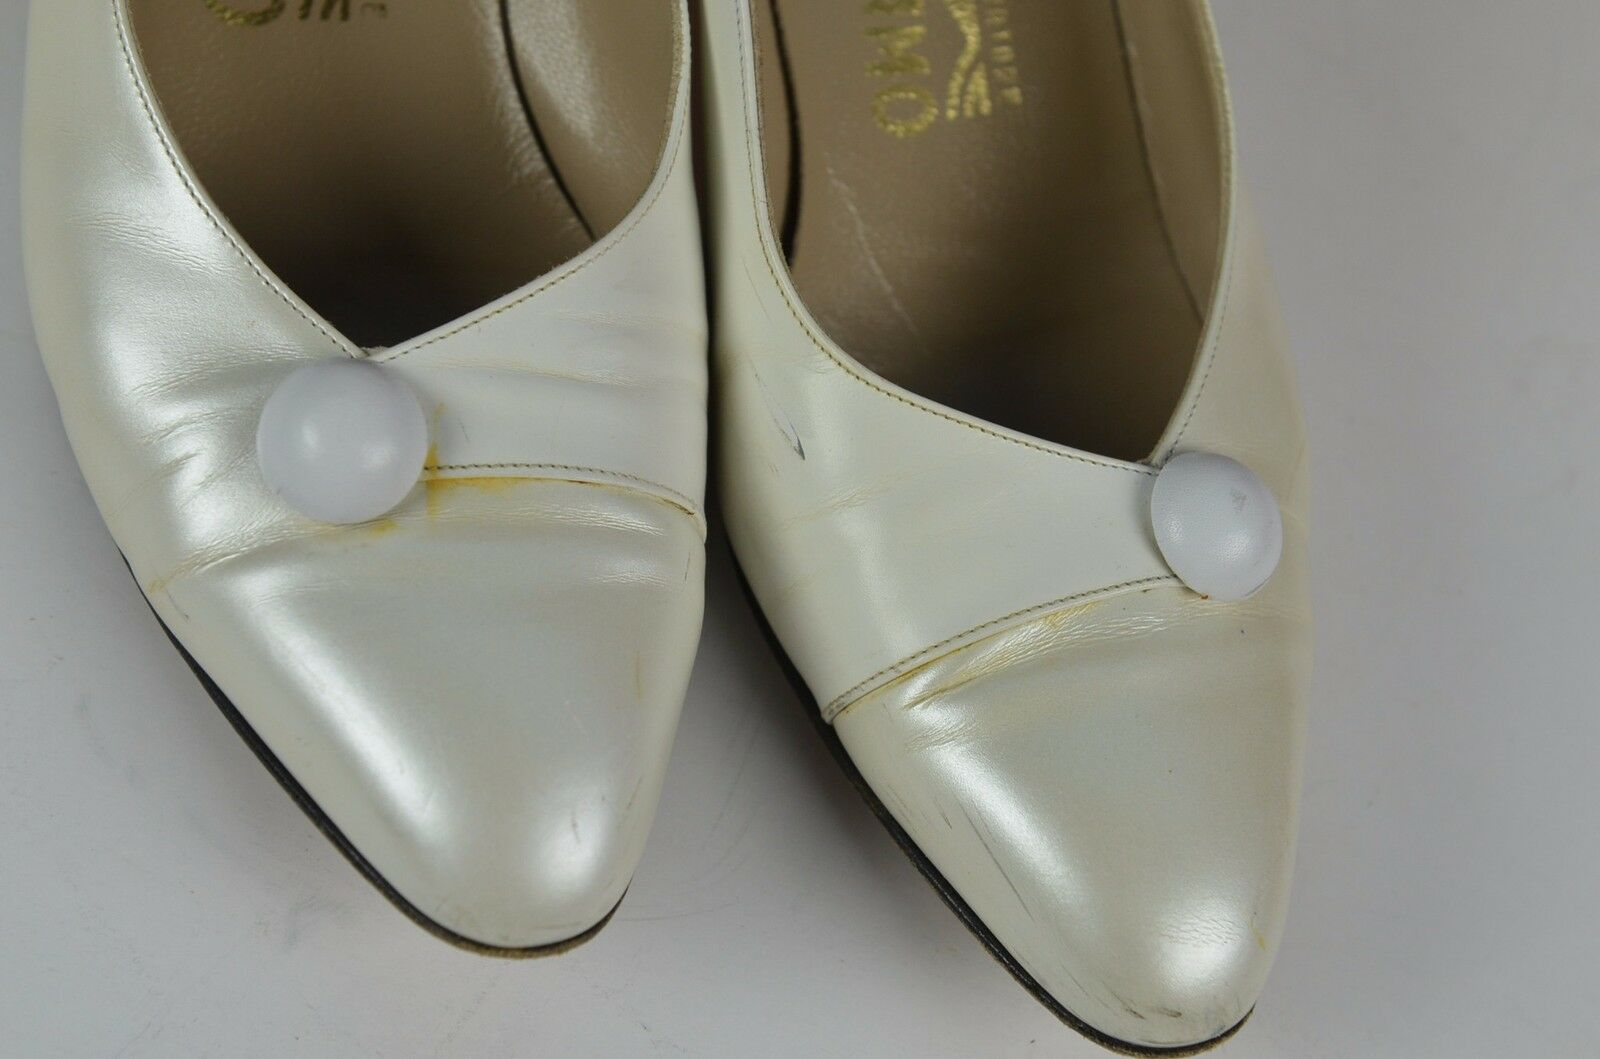 Salvatore Ferragamo Metallic White Pumps Size 8.5 B Career  Round Toe